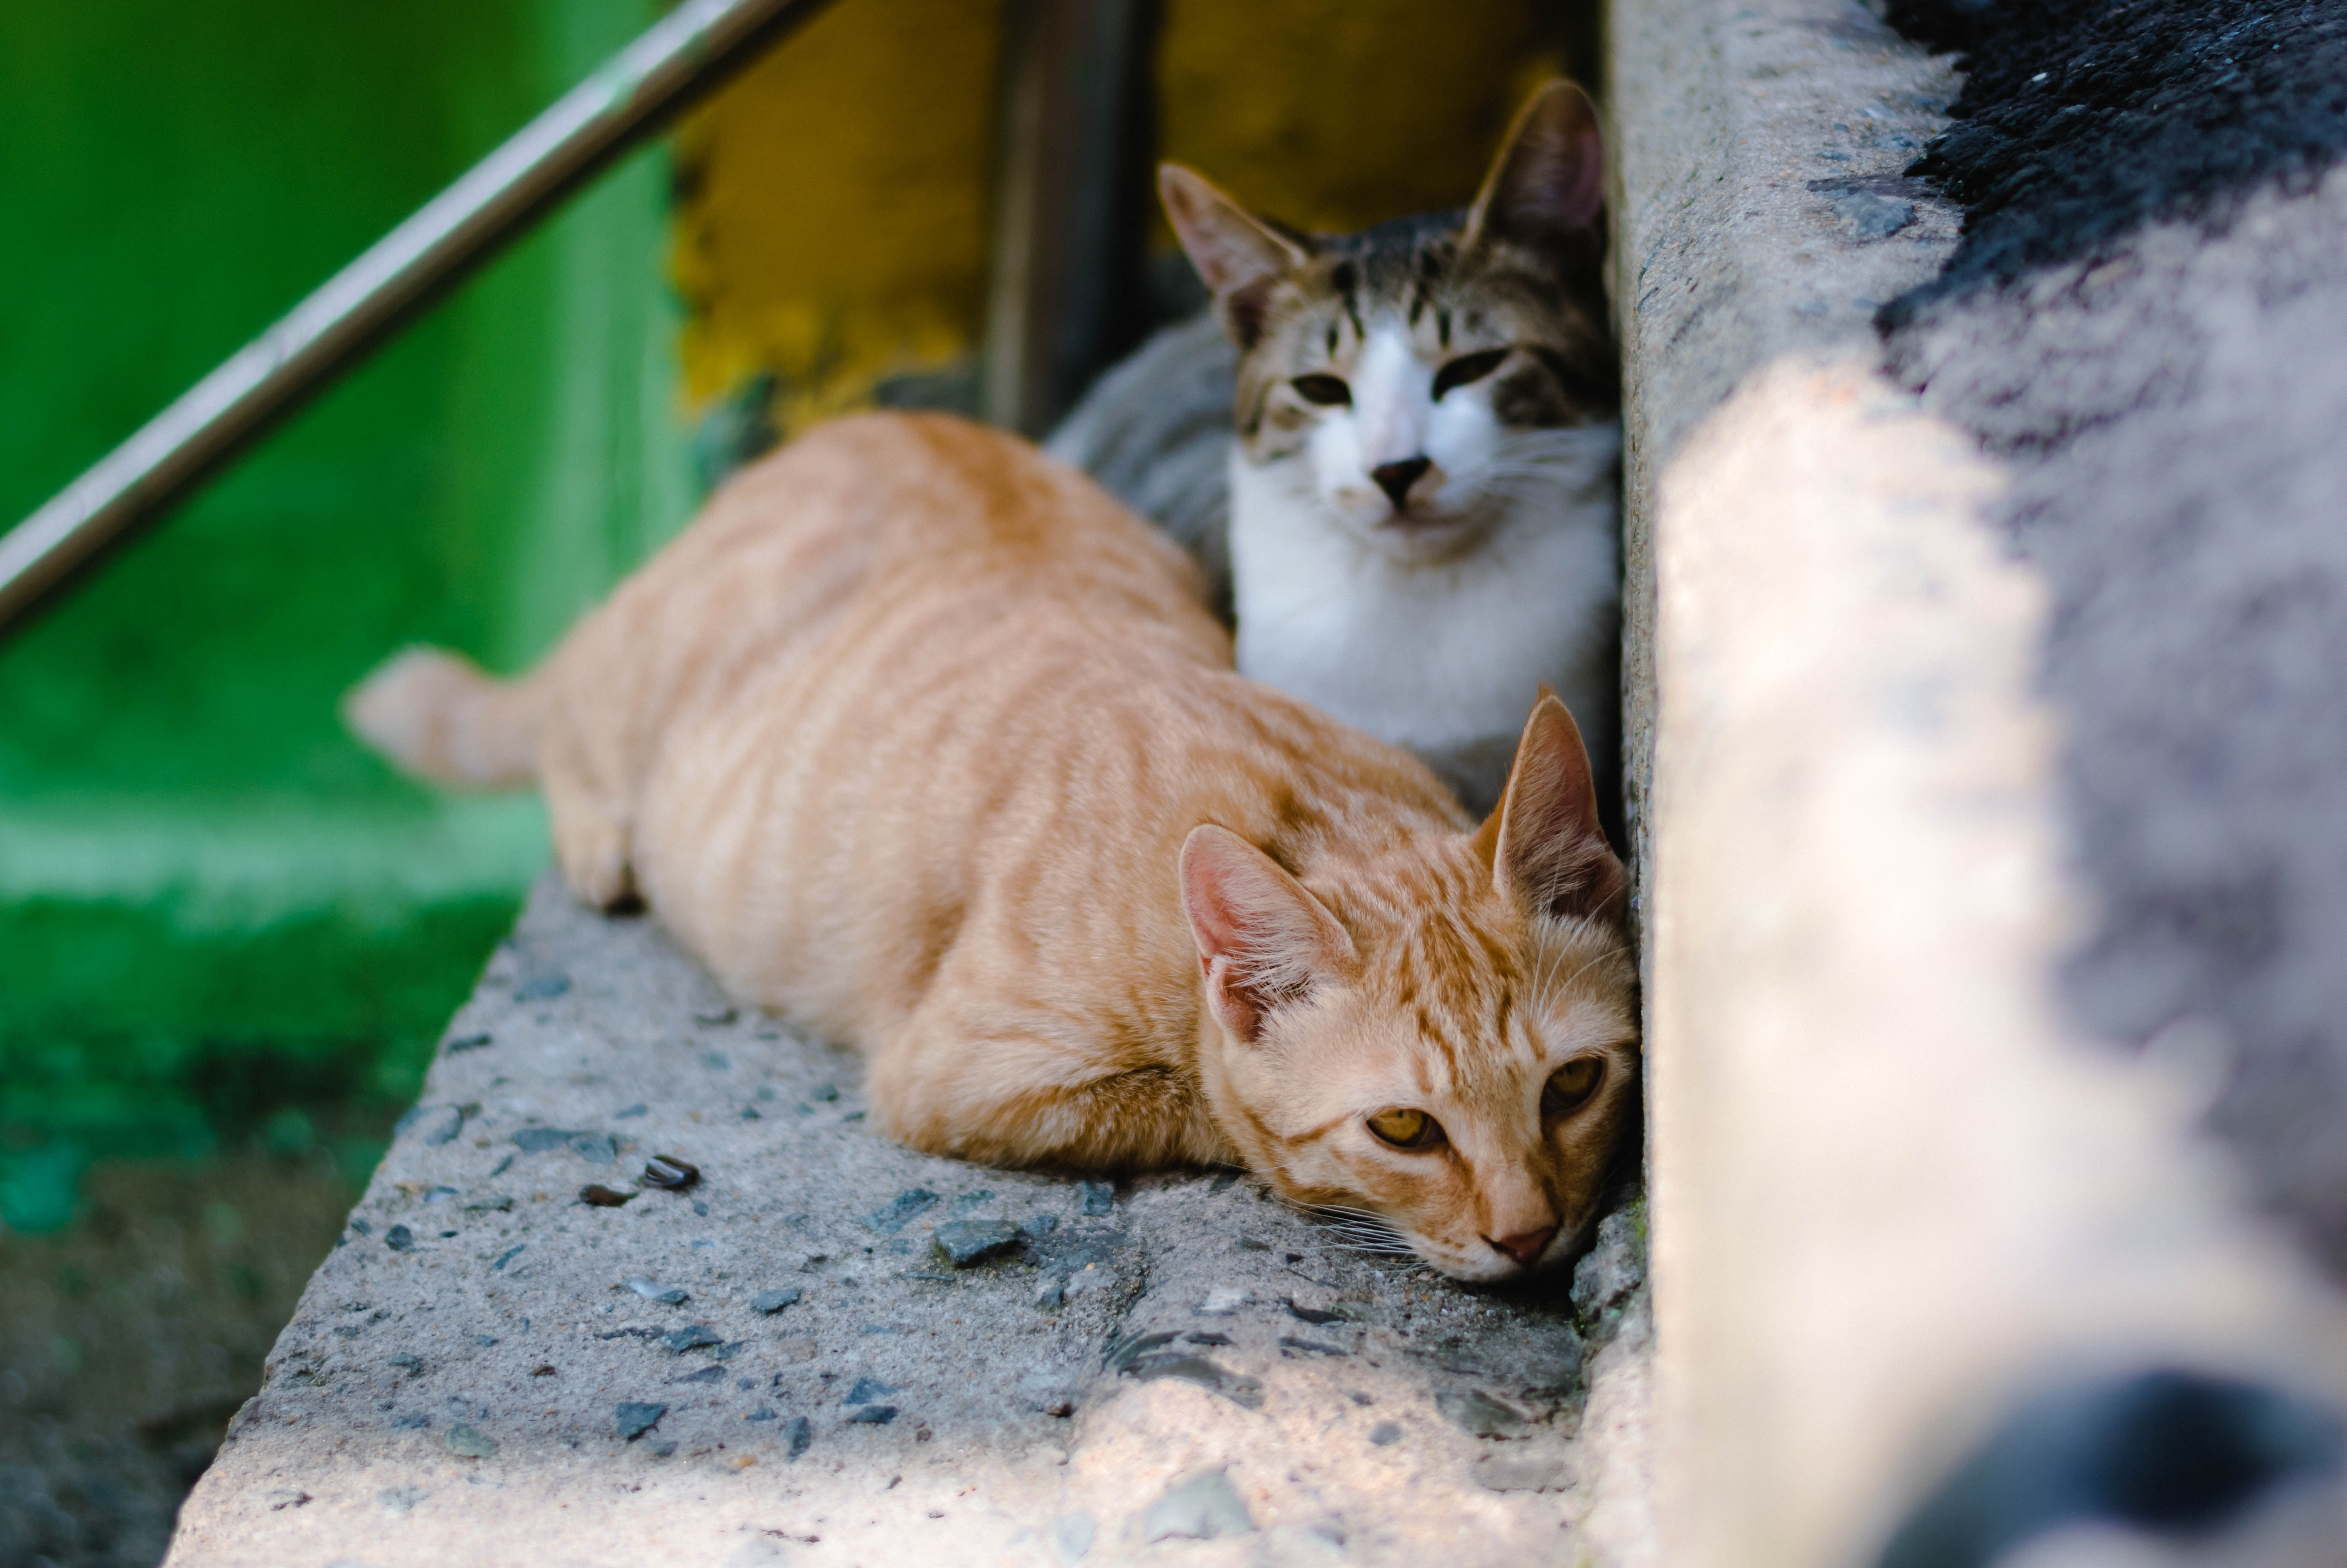 closeup photography of two orange tabby cat and tortoiseshell cat on concrete stairs